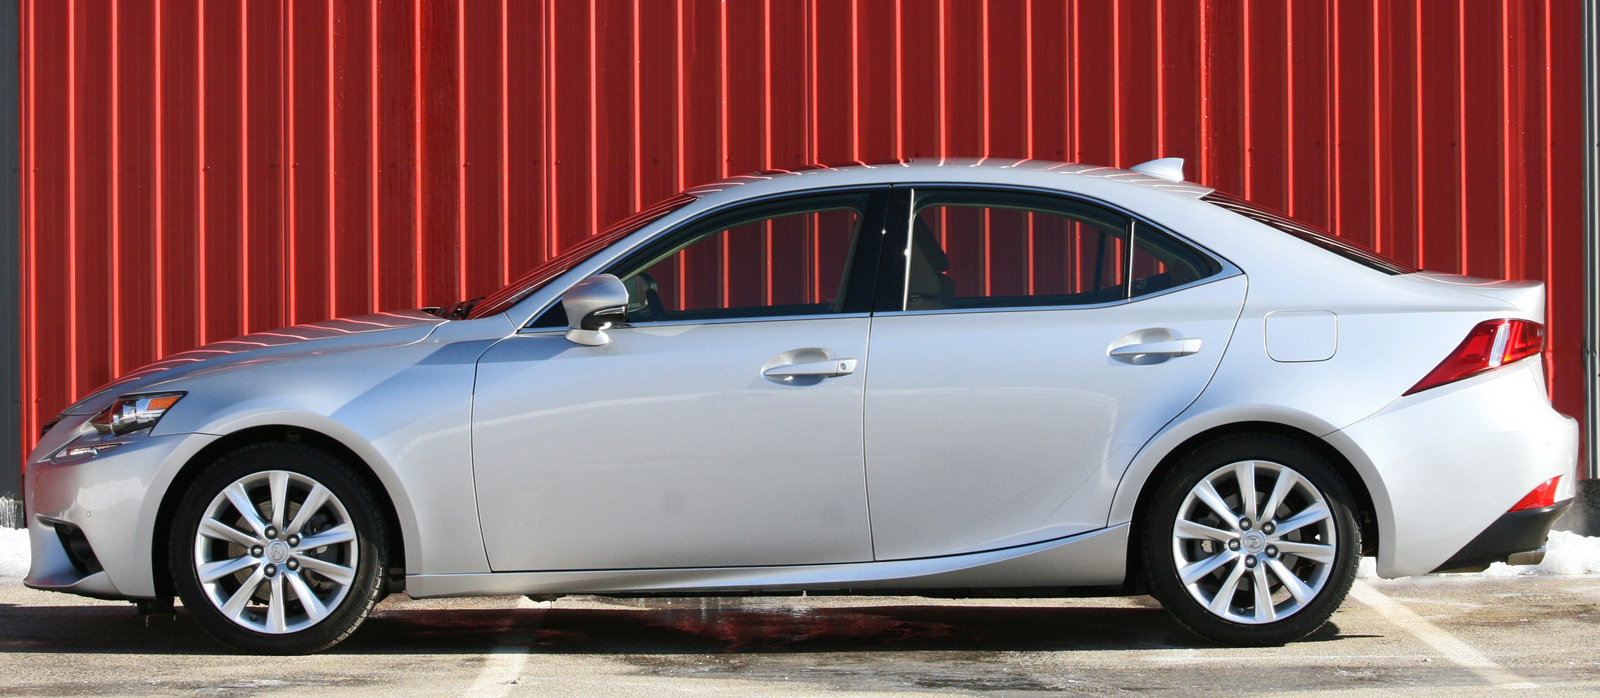 2014 Lexus IS 250 exterior side profile